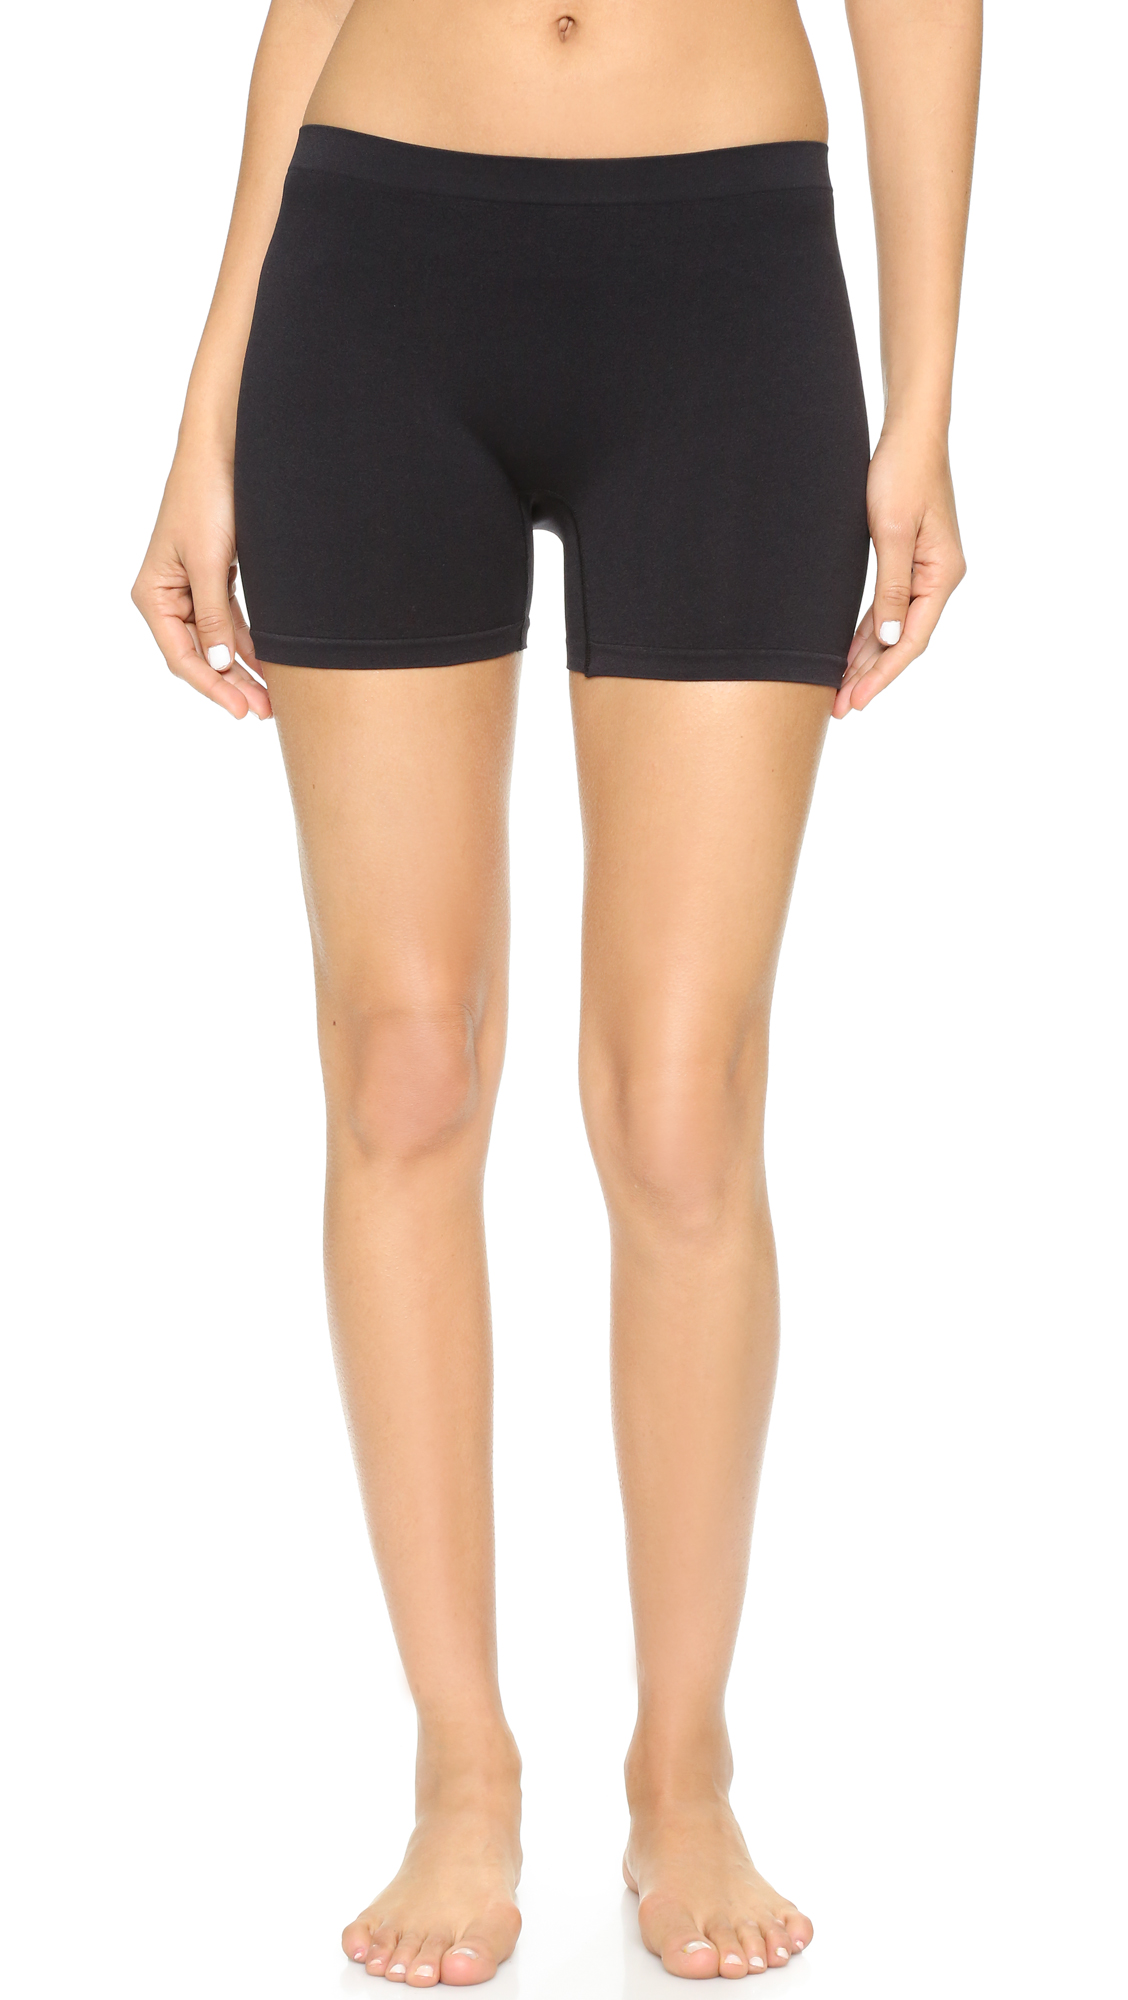 BB Dakota Caiden Seamless Bike Shorts - Black